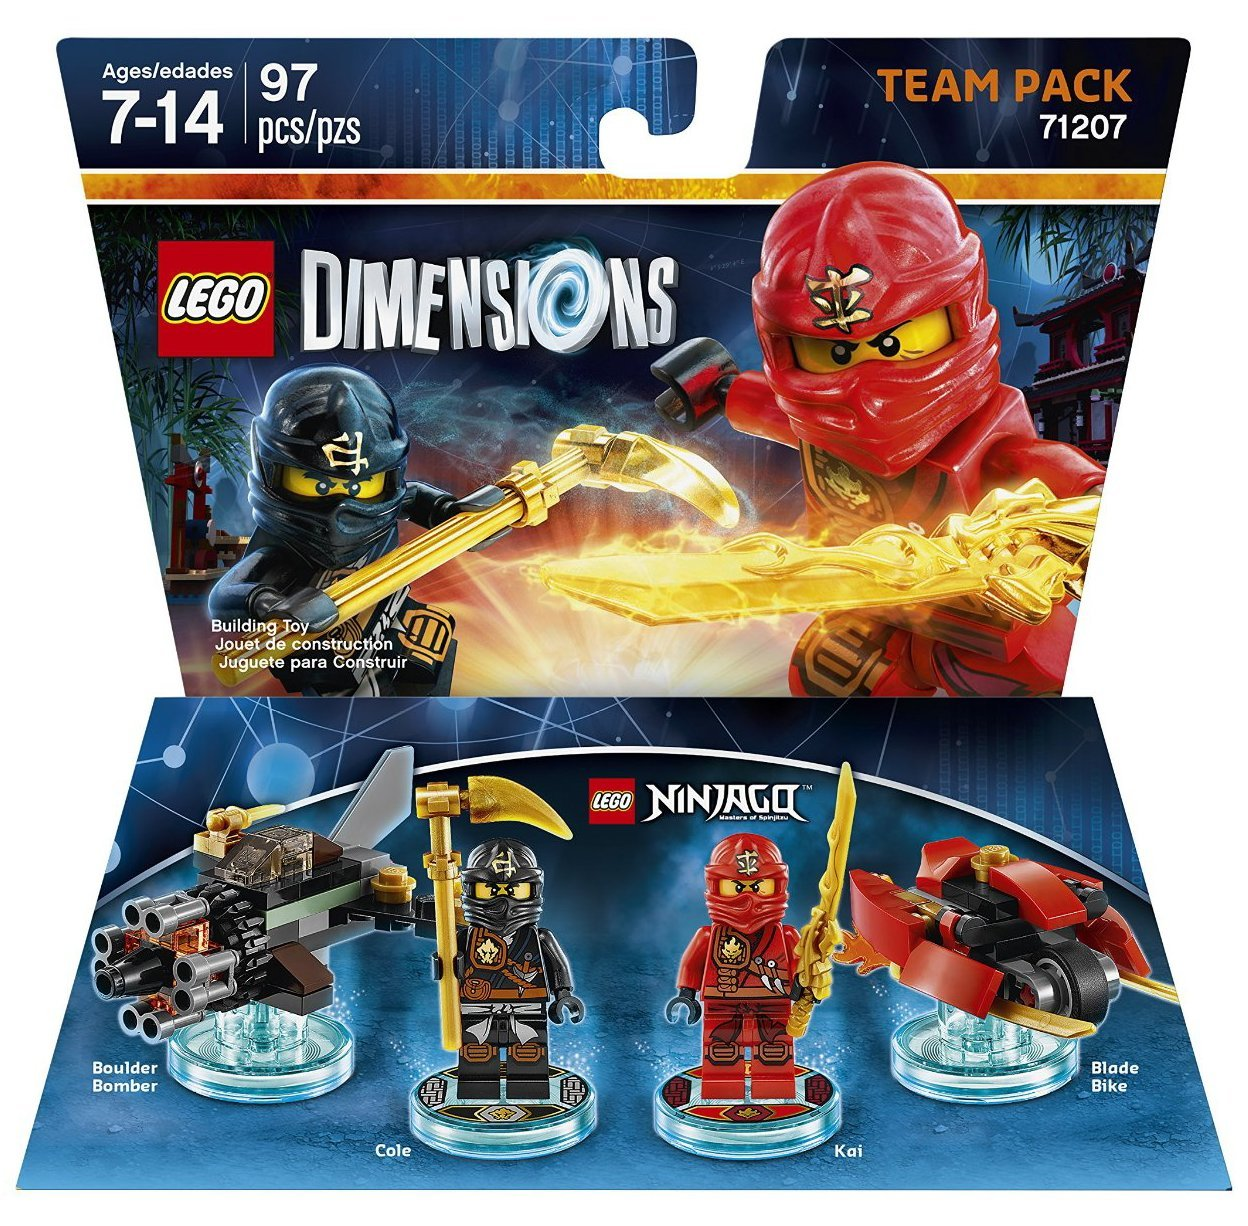 Ninjago Team Pack not machine specific